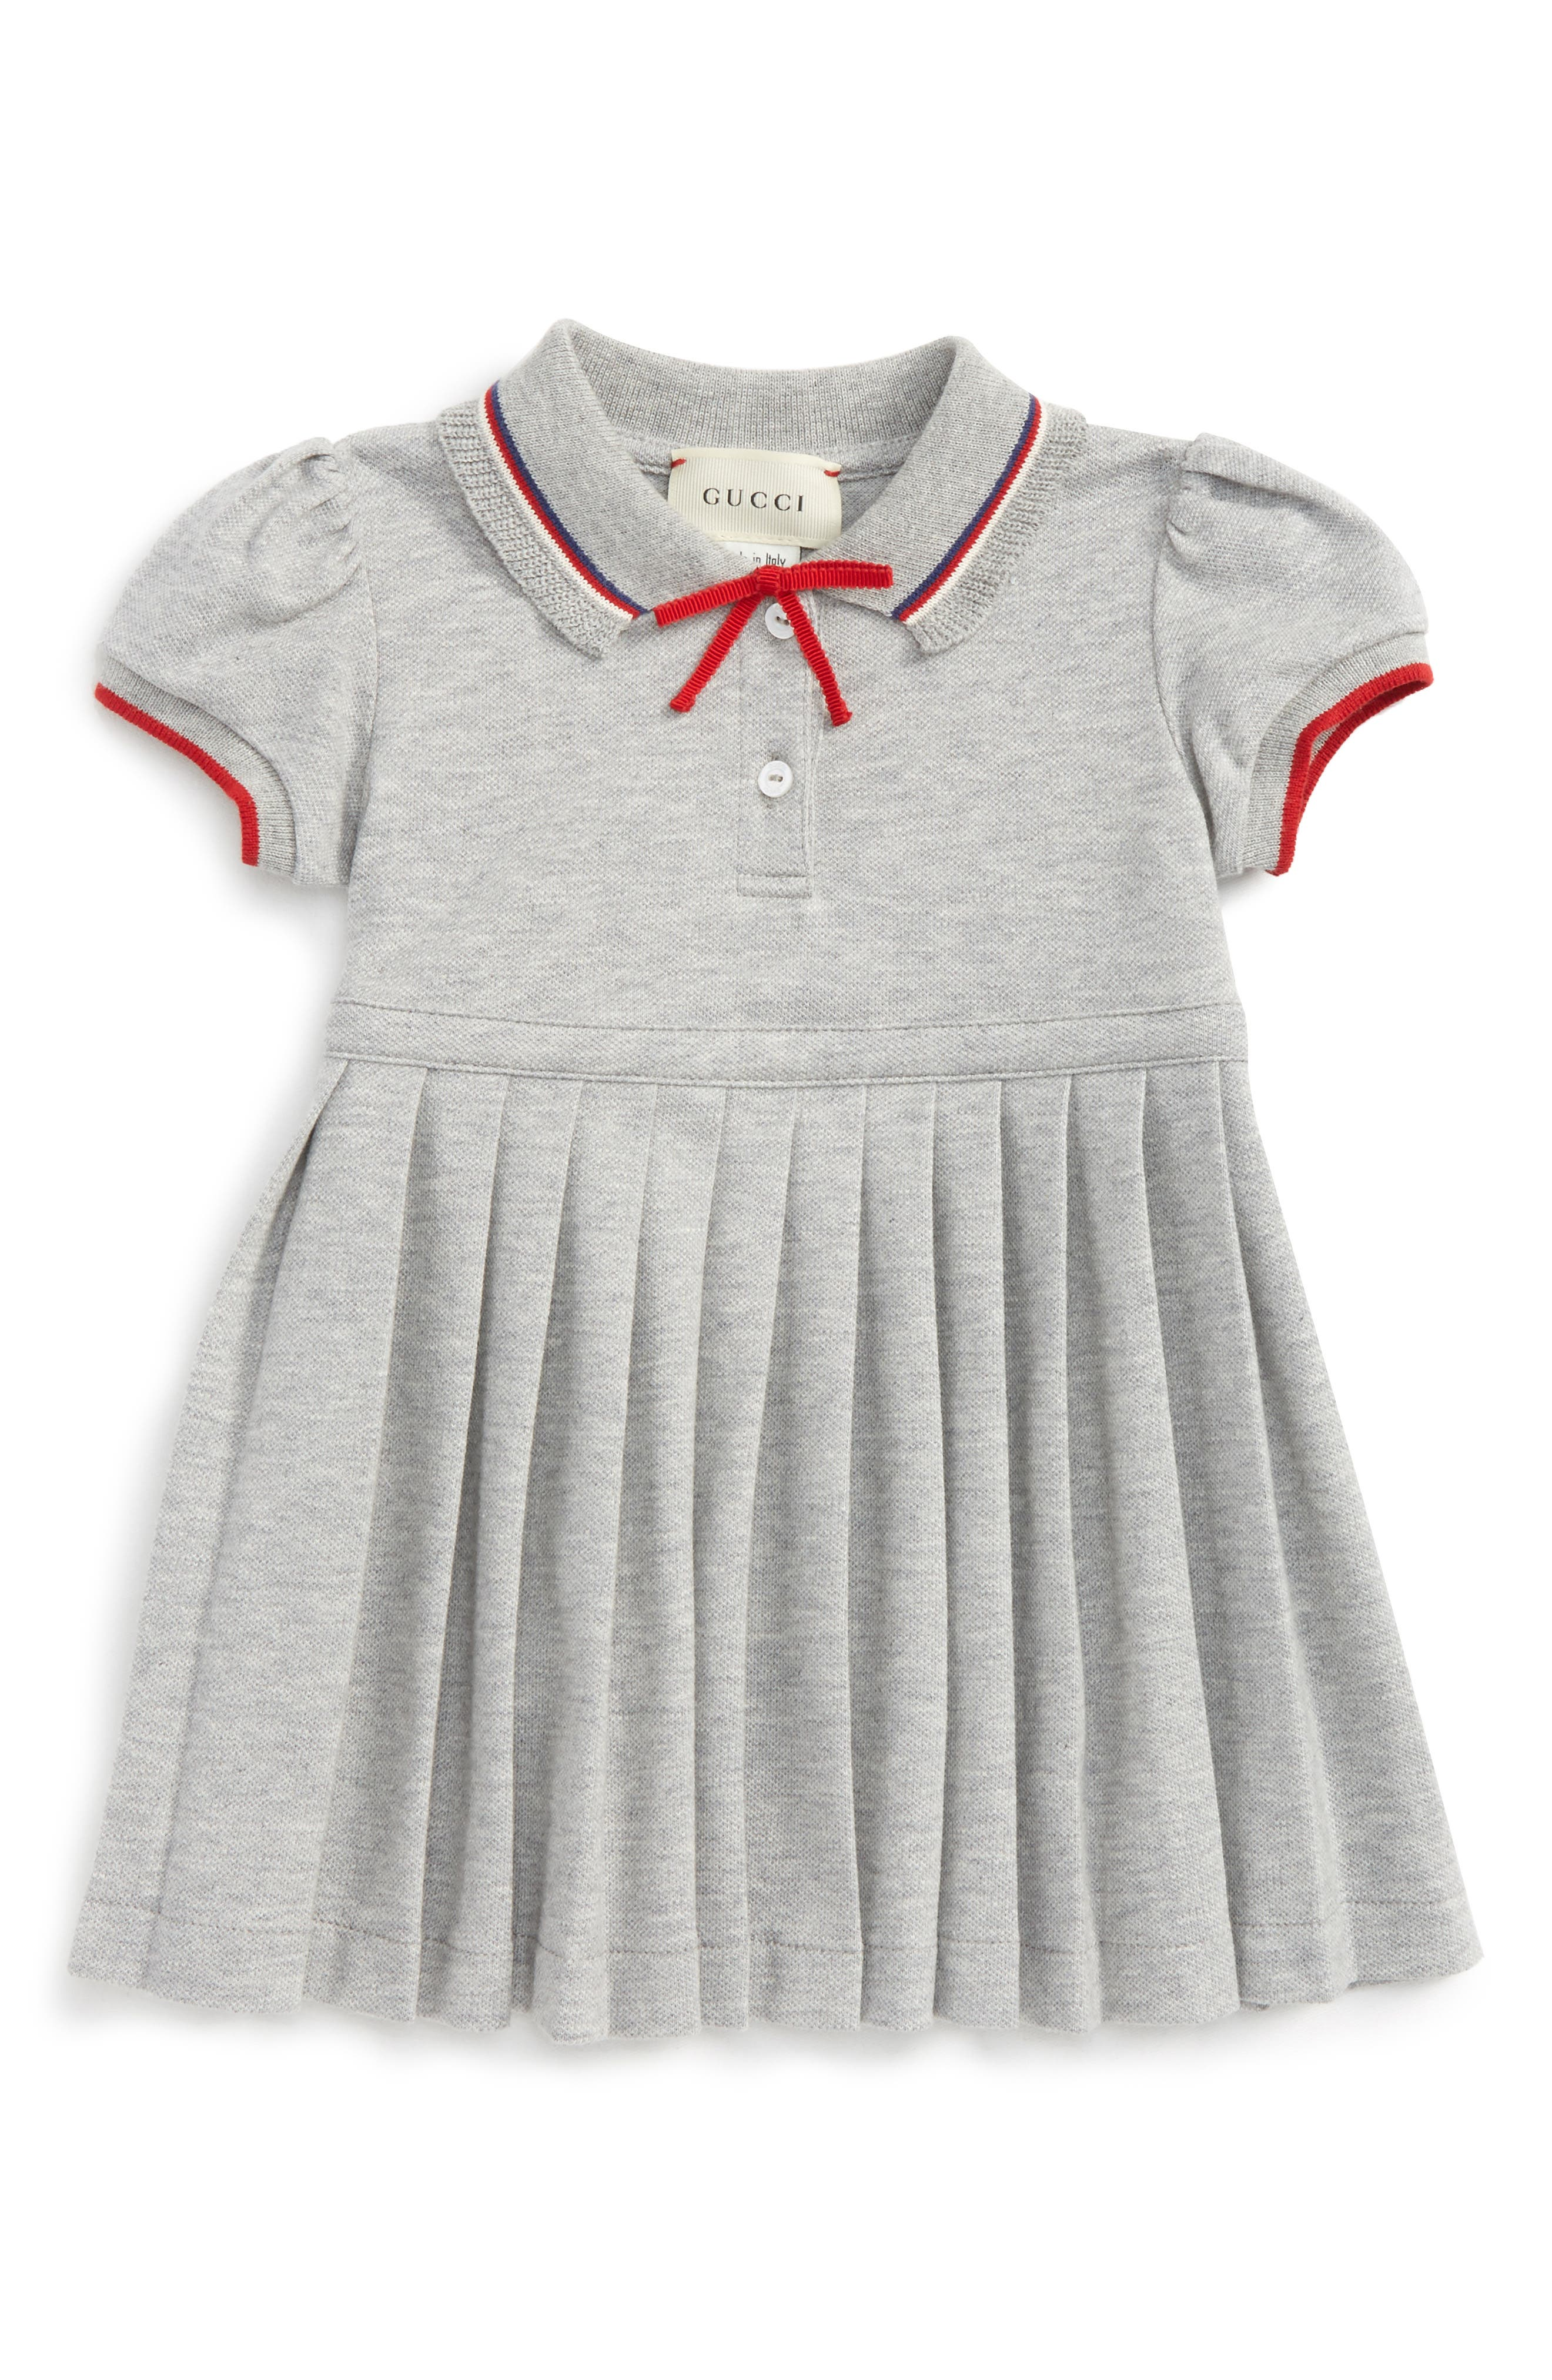 Main Image - Gucci Bow Trimmed Dress (Baby Girls)